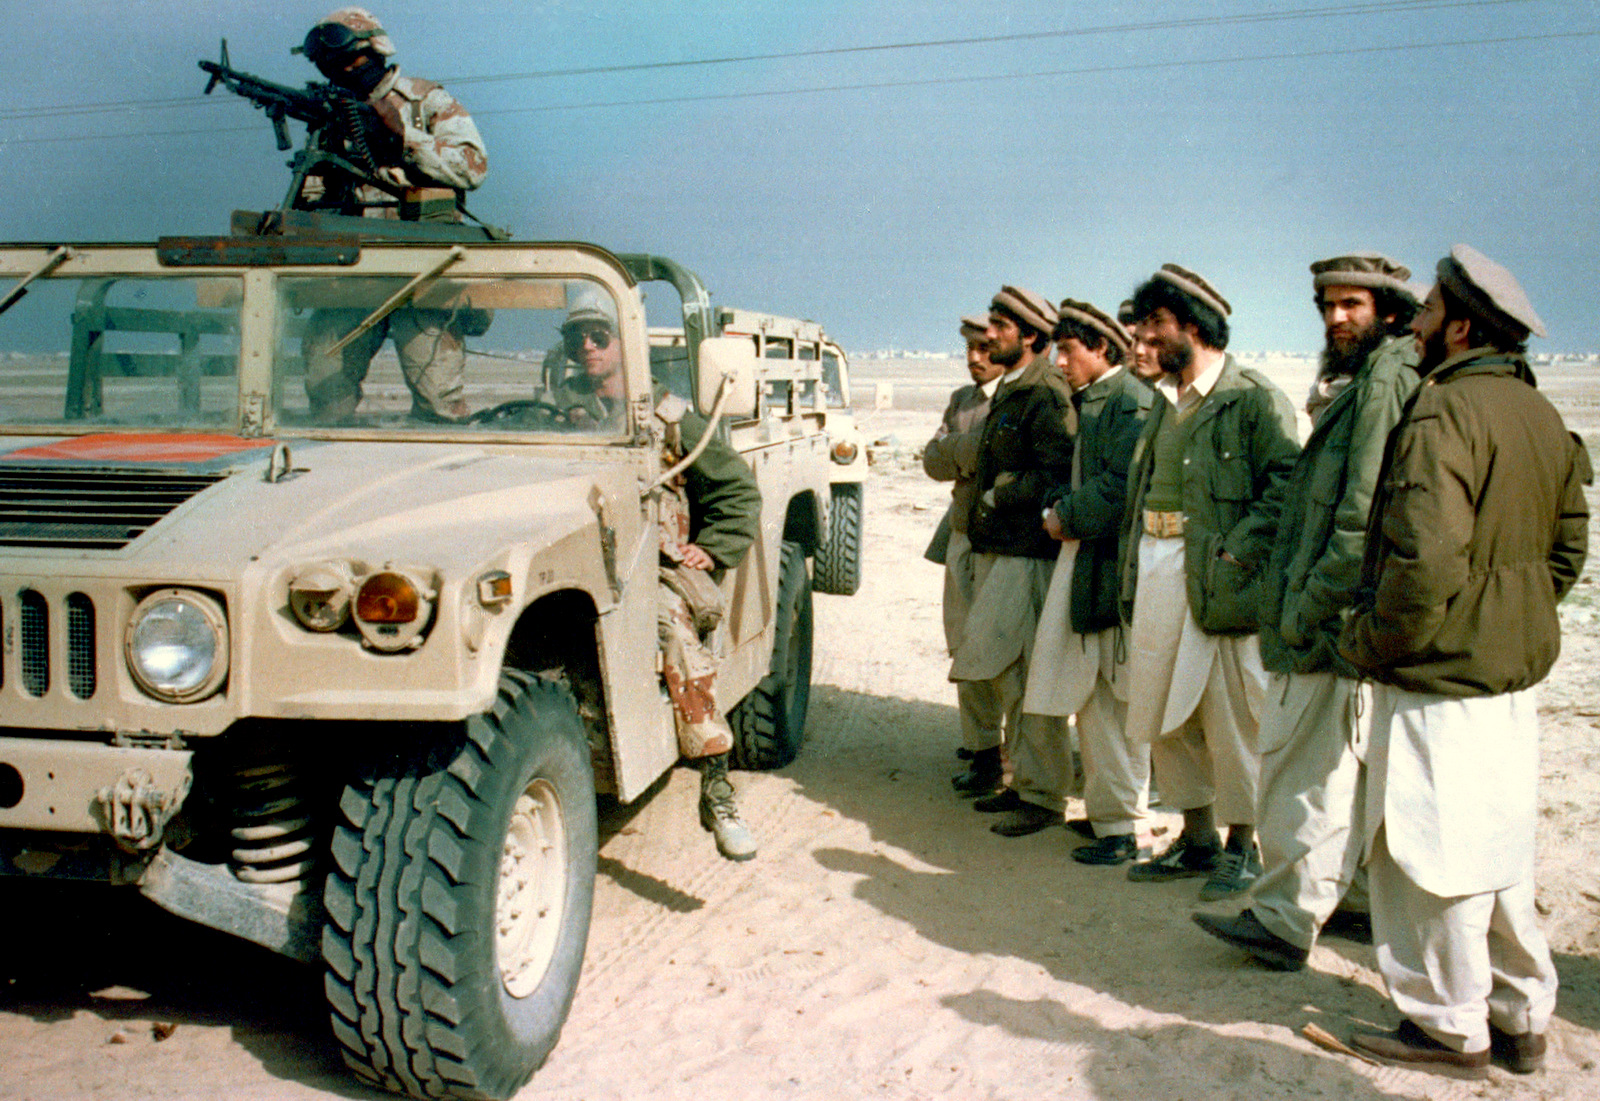 A group of Afghan mujahedeens, Islamic guerrillas, look over a U.S. Marine humvee in eastern Saudi Arabia, Monday, Feb. 11, 1991. The Marines visited a camp consisting of about 300 mujahedeens who have been asked by the Saudi government to help fight against Iraq in the Gulf War. (AP Photo/Department of Defense)